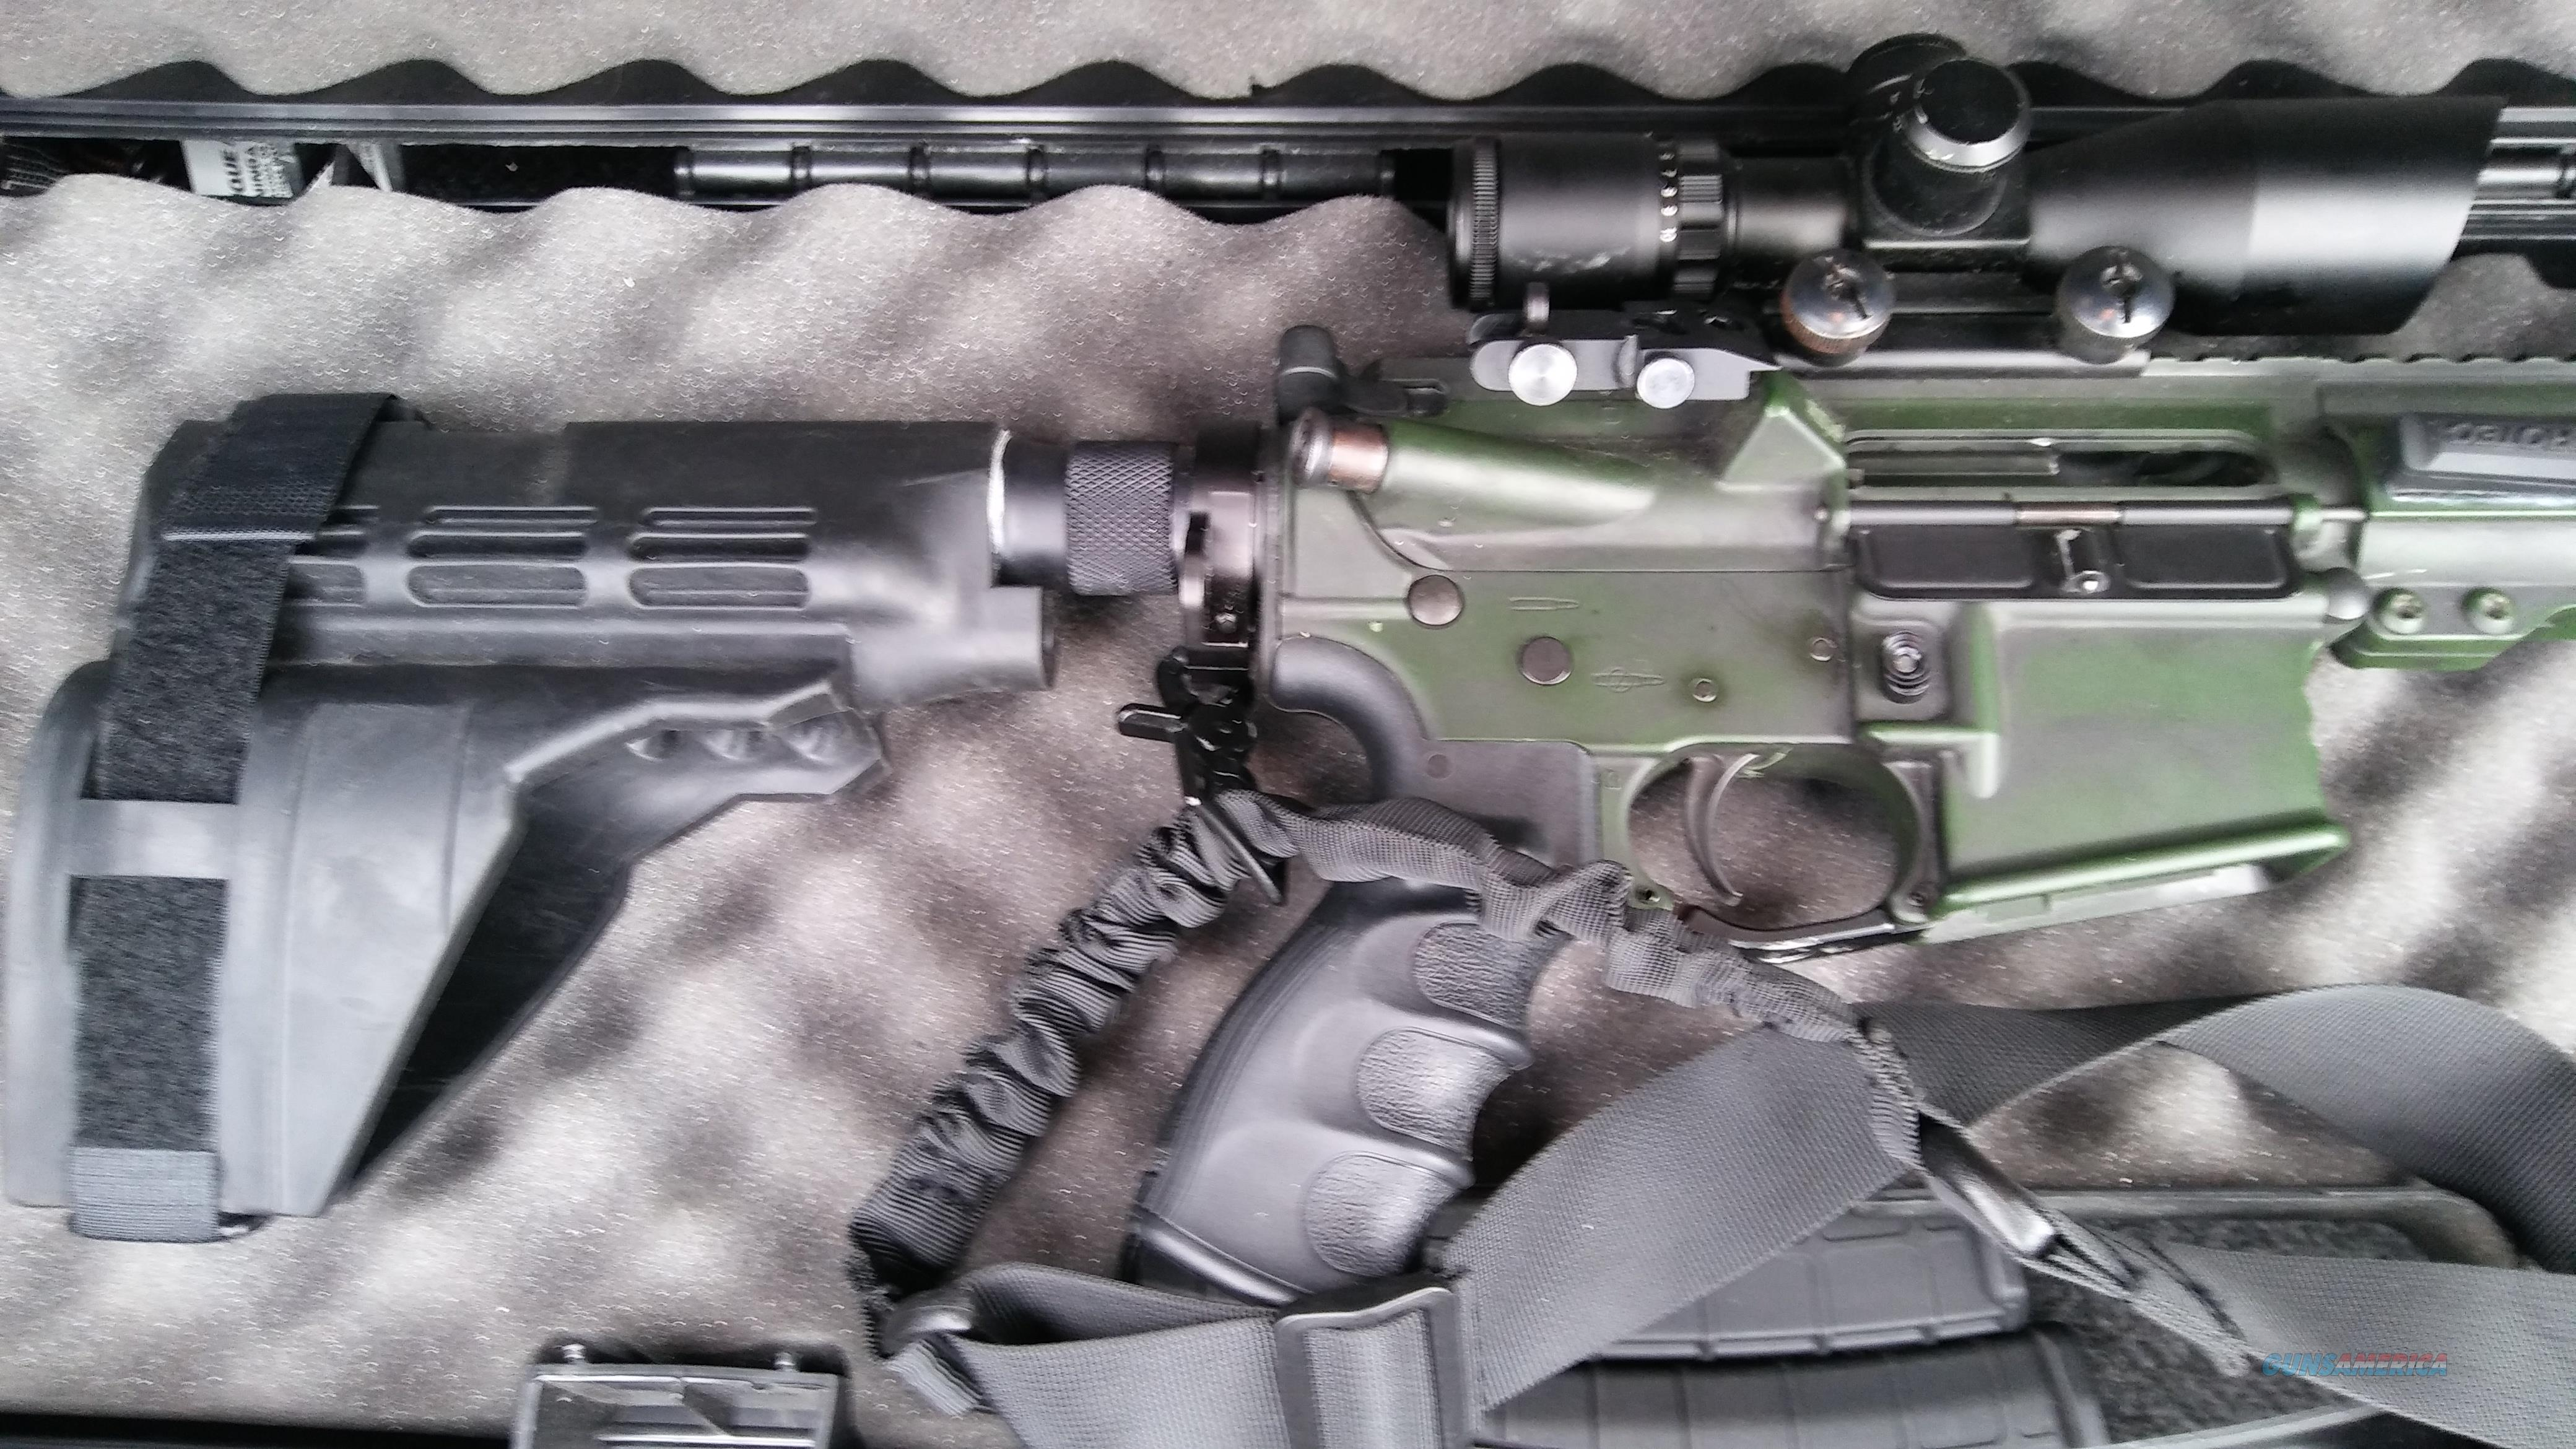 East Coast Customs tactical 300 Blackout pistol  Guns > Rifles > AR-15 Rifles - Small Manufacturers > Complete Rifle